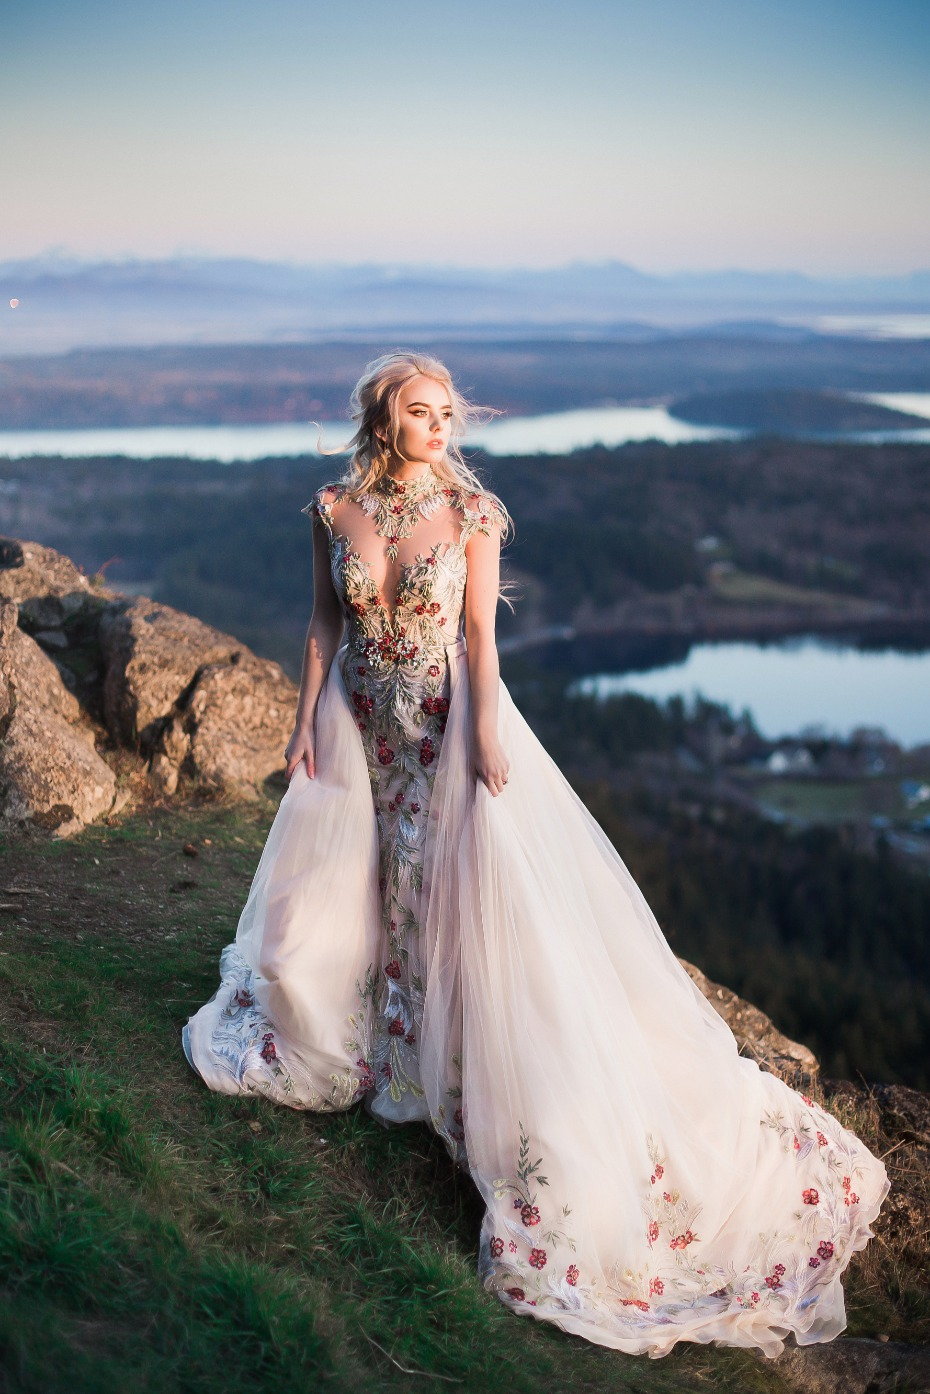 dreamy over the top wedding gown and a view to die for